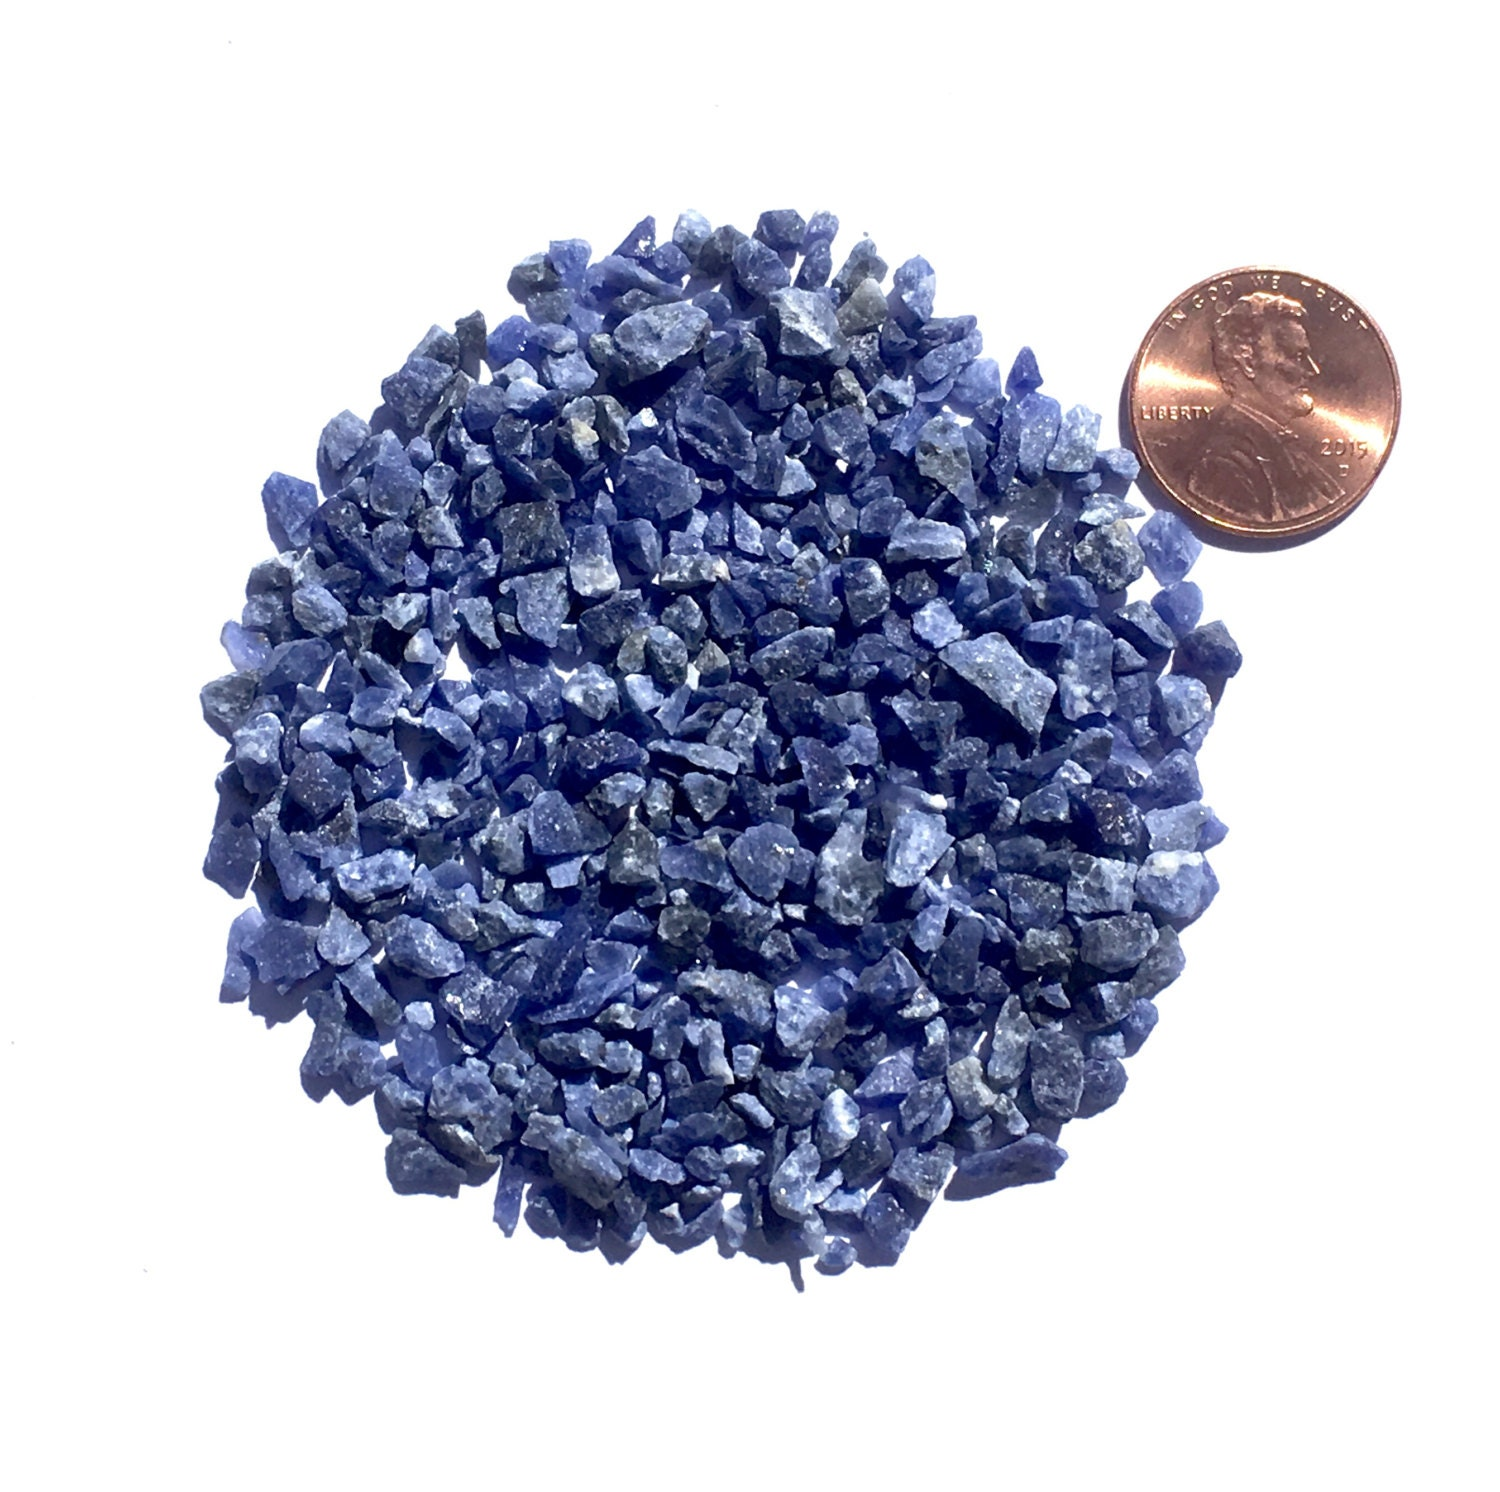 Crushed Gemstone For Inlays : Crushed sodalite stone inlay coarse ounce